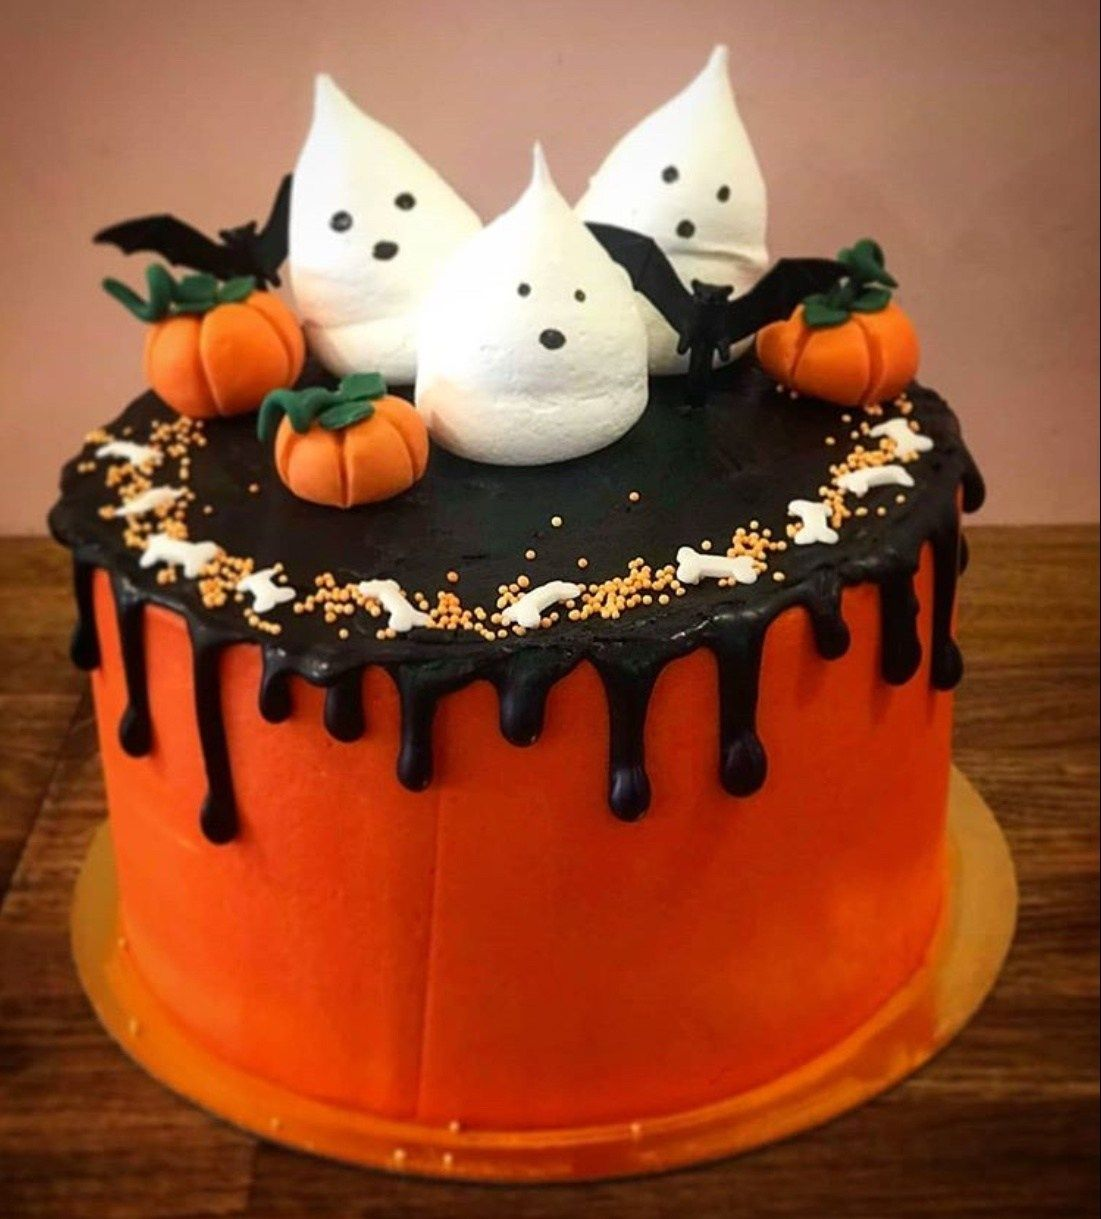 Halloween Cake Ideas 2020 Whether your birthday falls on Halloween or you just want a cake